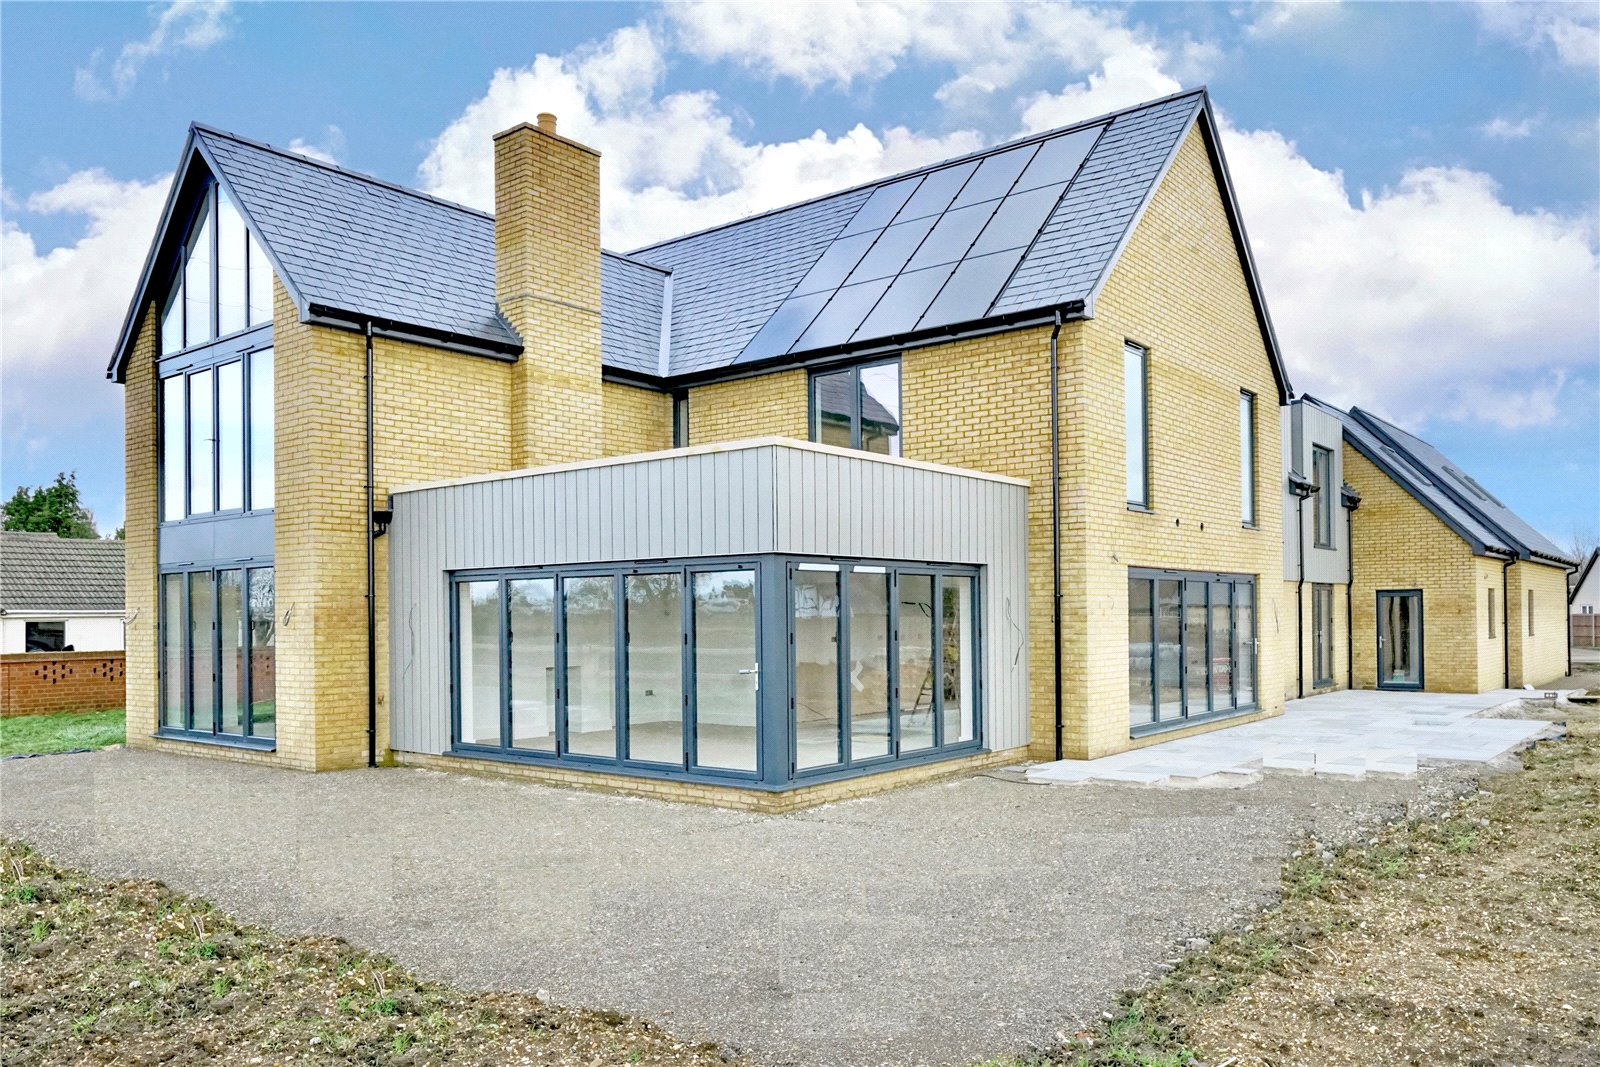 5 bed house for sale in Grange Road, Blunham - Property Image 1